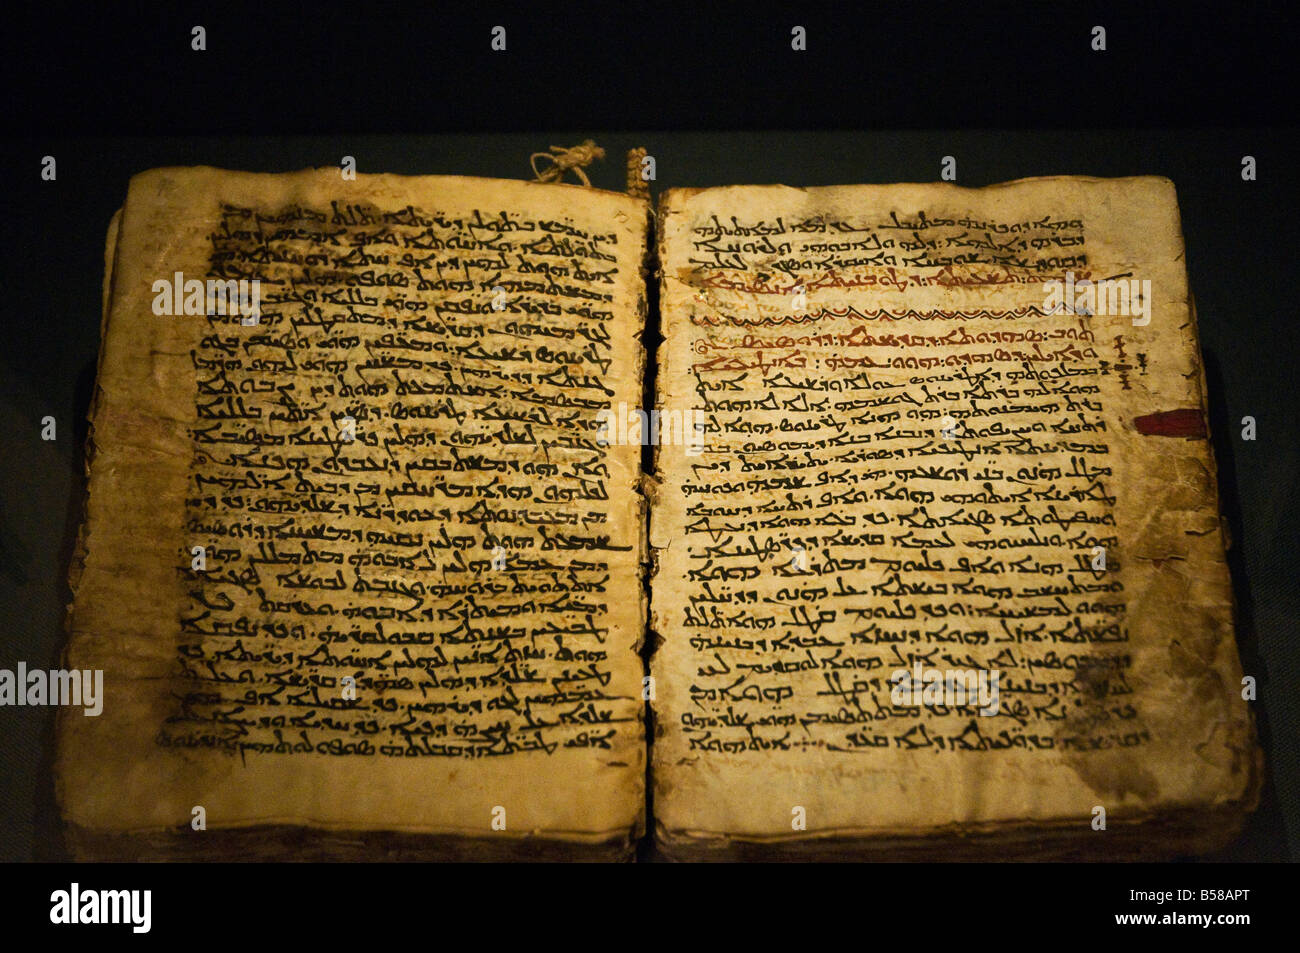 Codex Sinaiticus Syriacus dating from the 5th century, Monastery of St. Catherine, Sinai, Egypt, North Africa, Africa - Stock Image